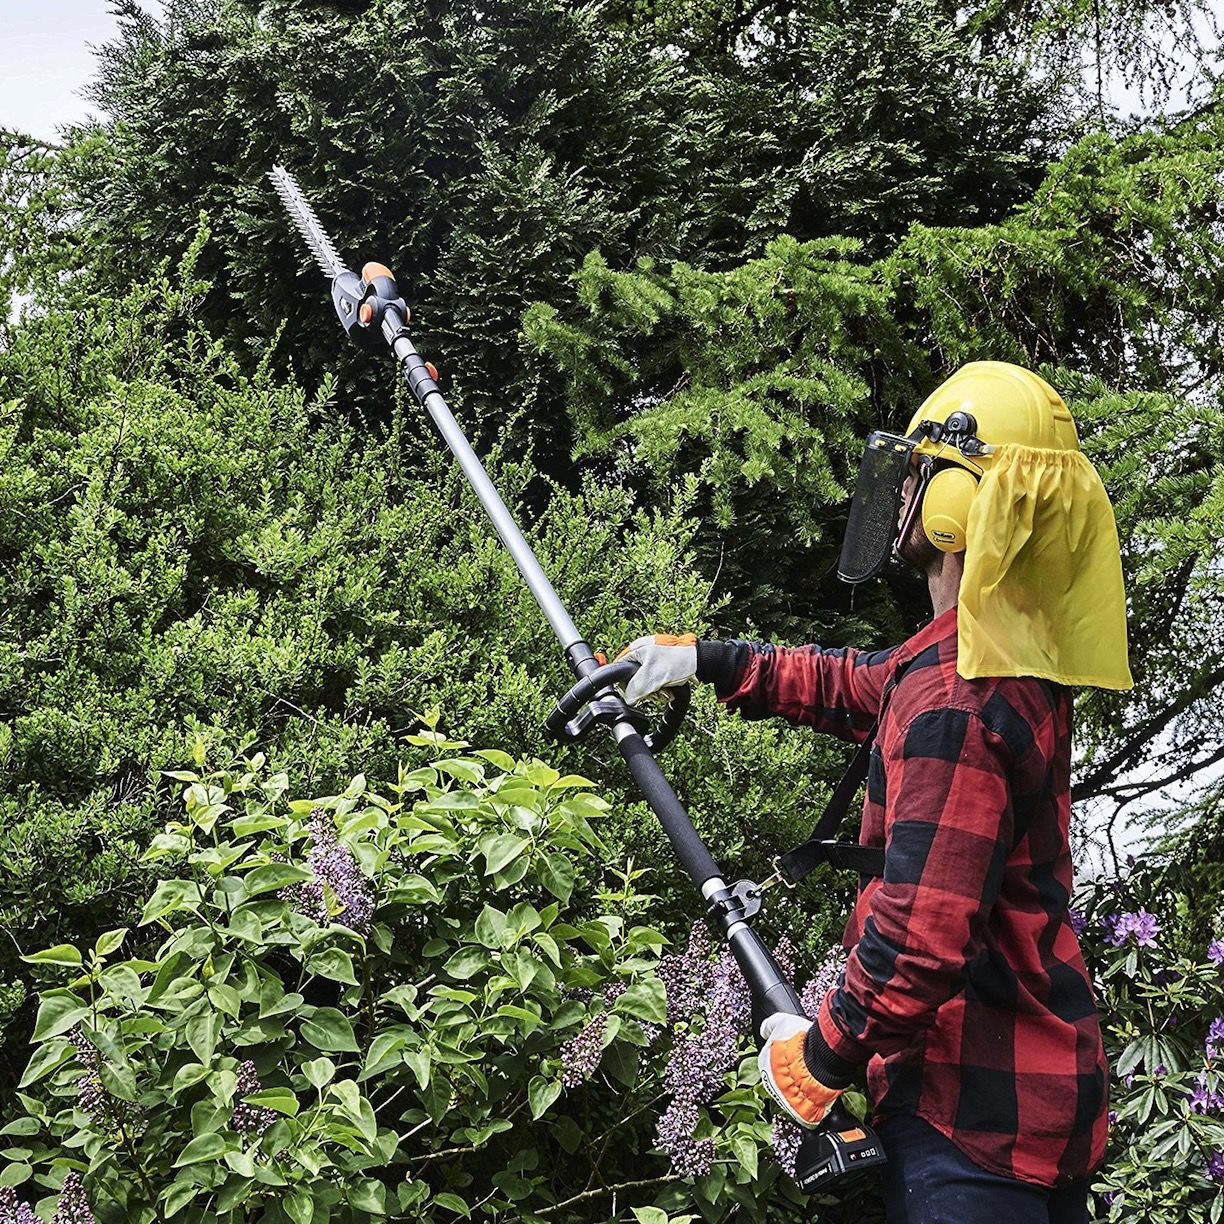 Hedge trimmers may be less powerful than other garden